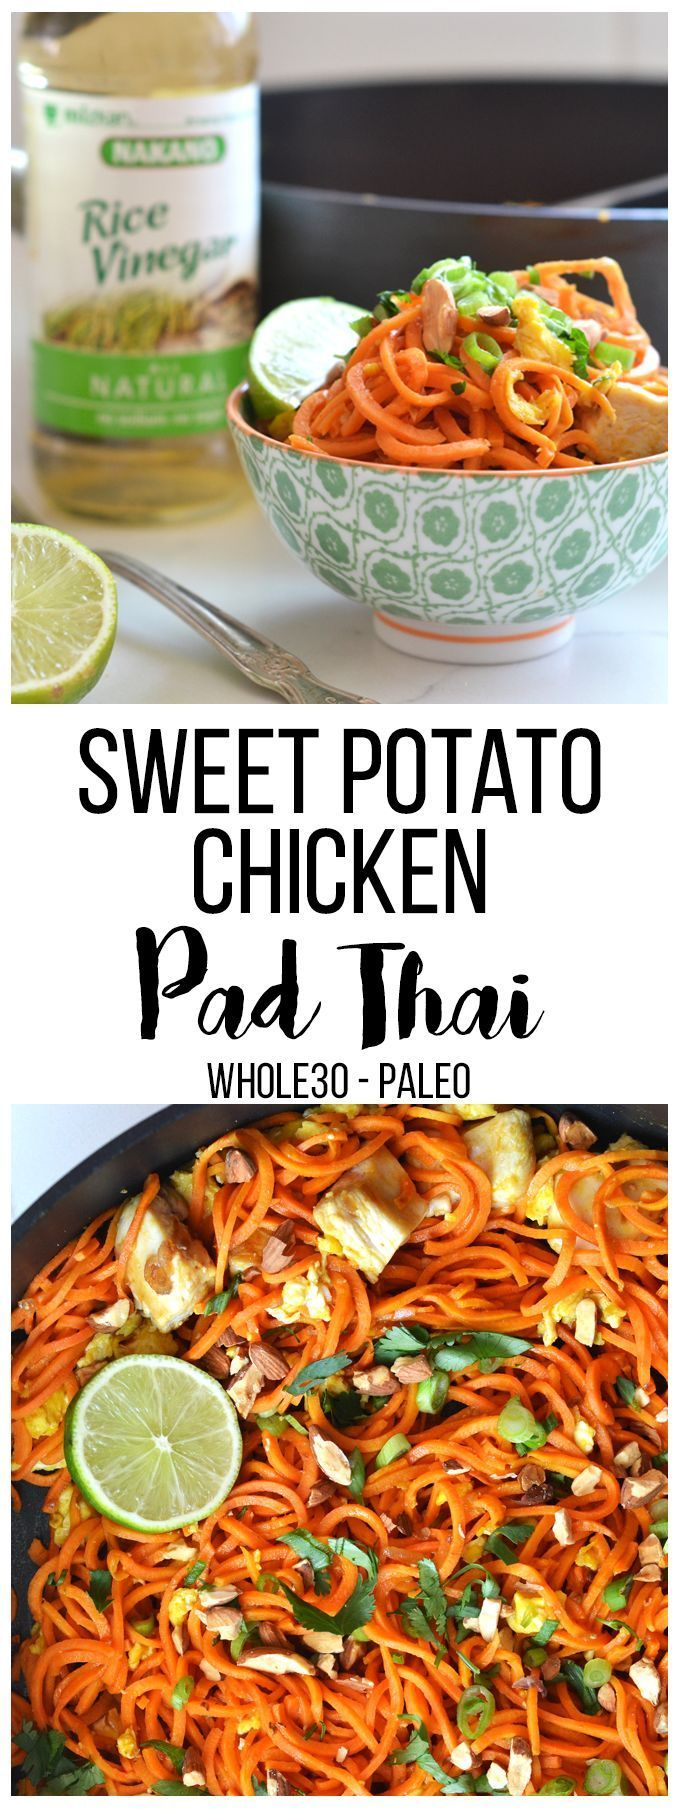 This Sweet Potato Chicken Pad Thai is an easy Whole30 and paleo recipe that reminds you of the classic recipe!